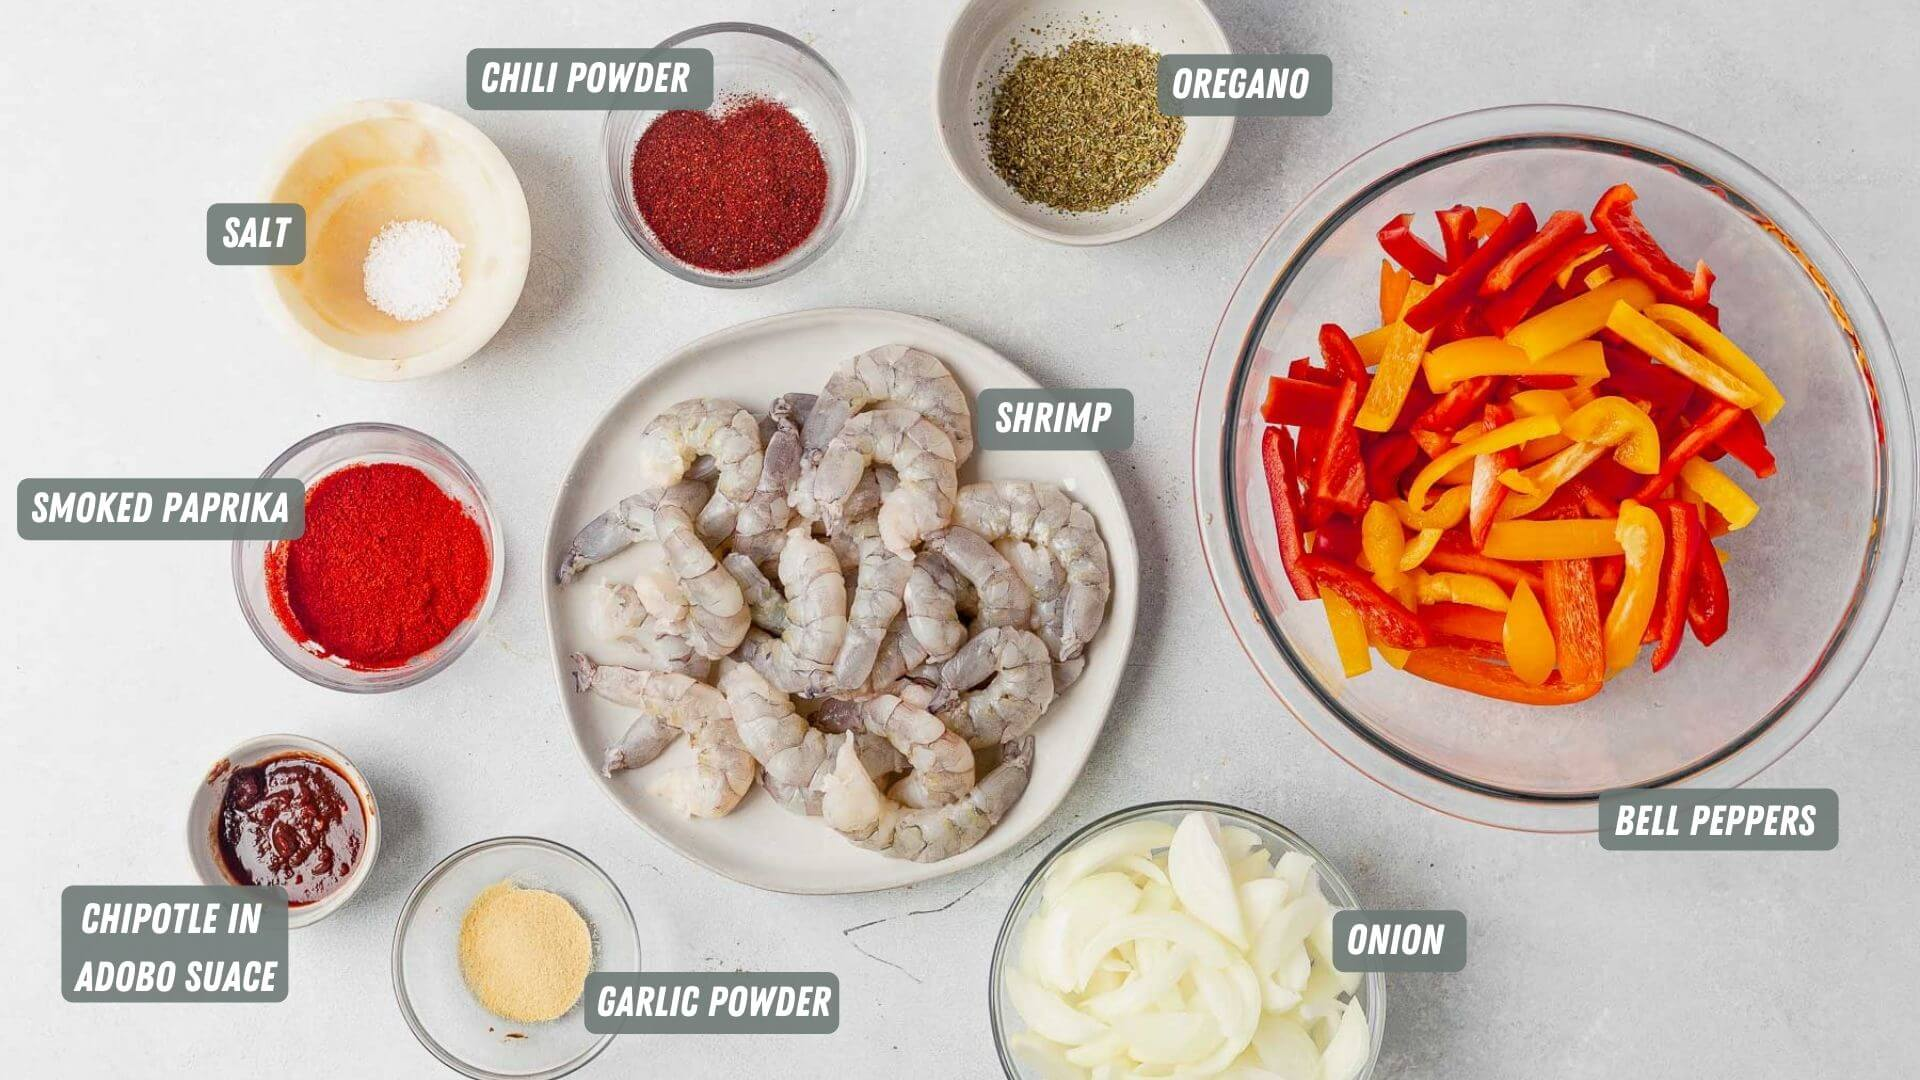 shrimp fajita ingredients measured out on a table